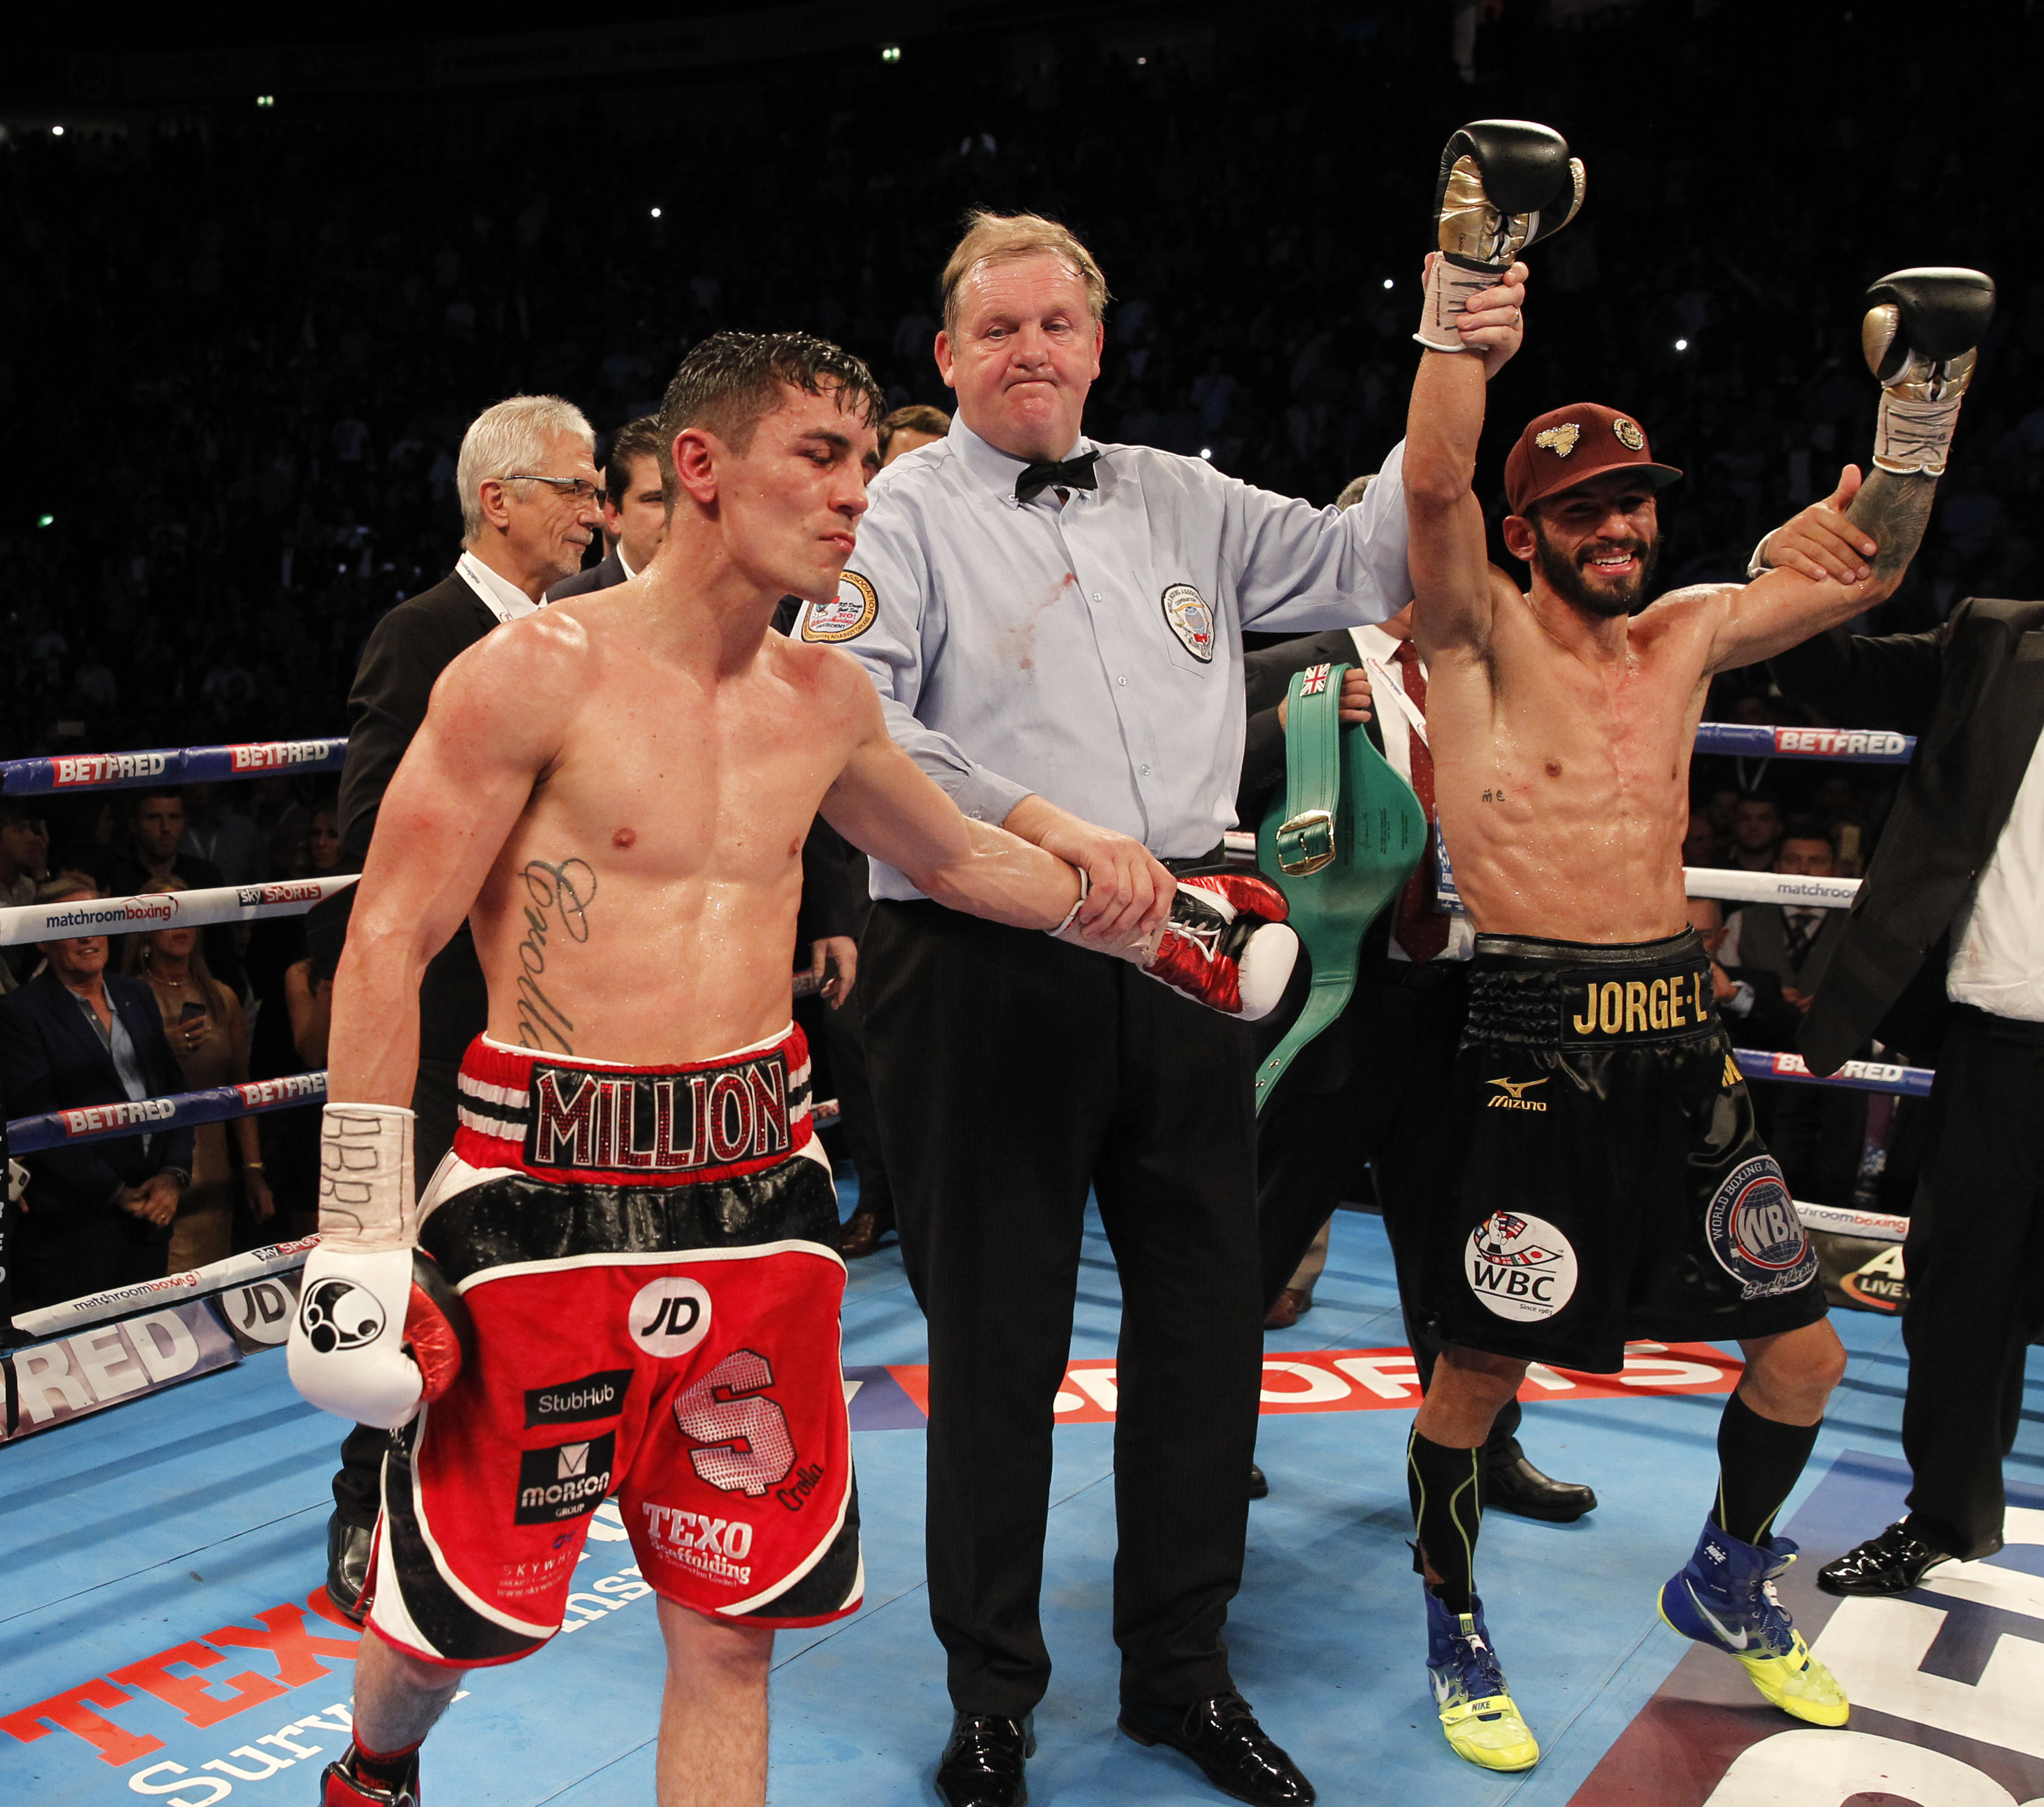 Anthony Crolla vs Jorge Linares 1